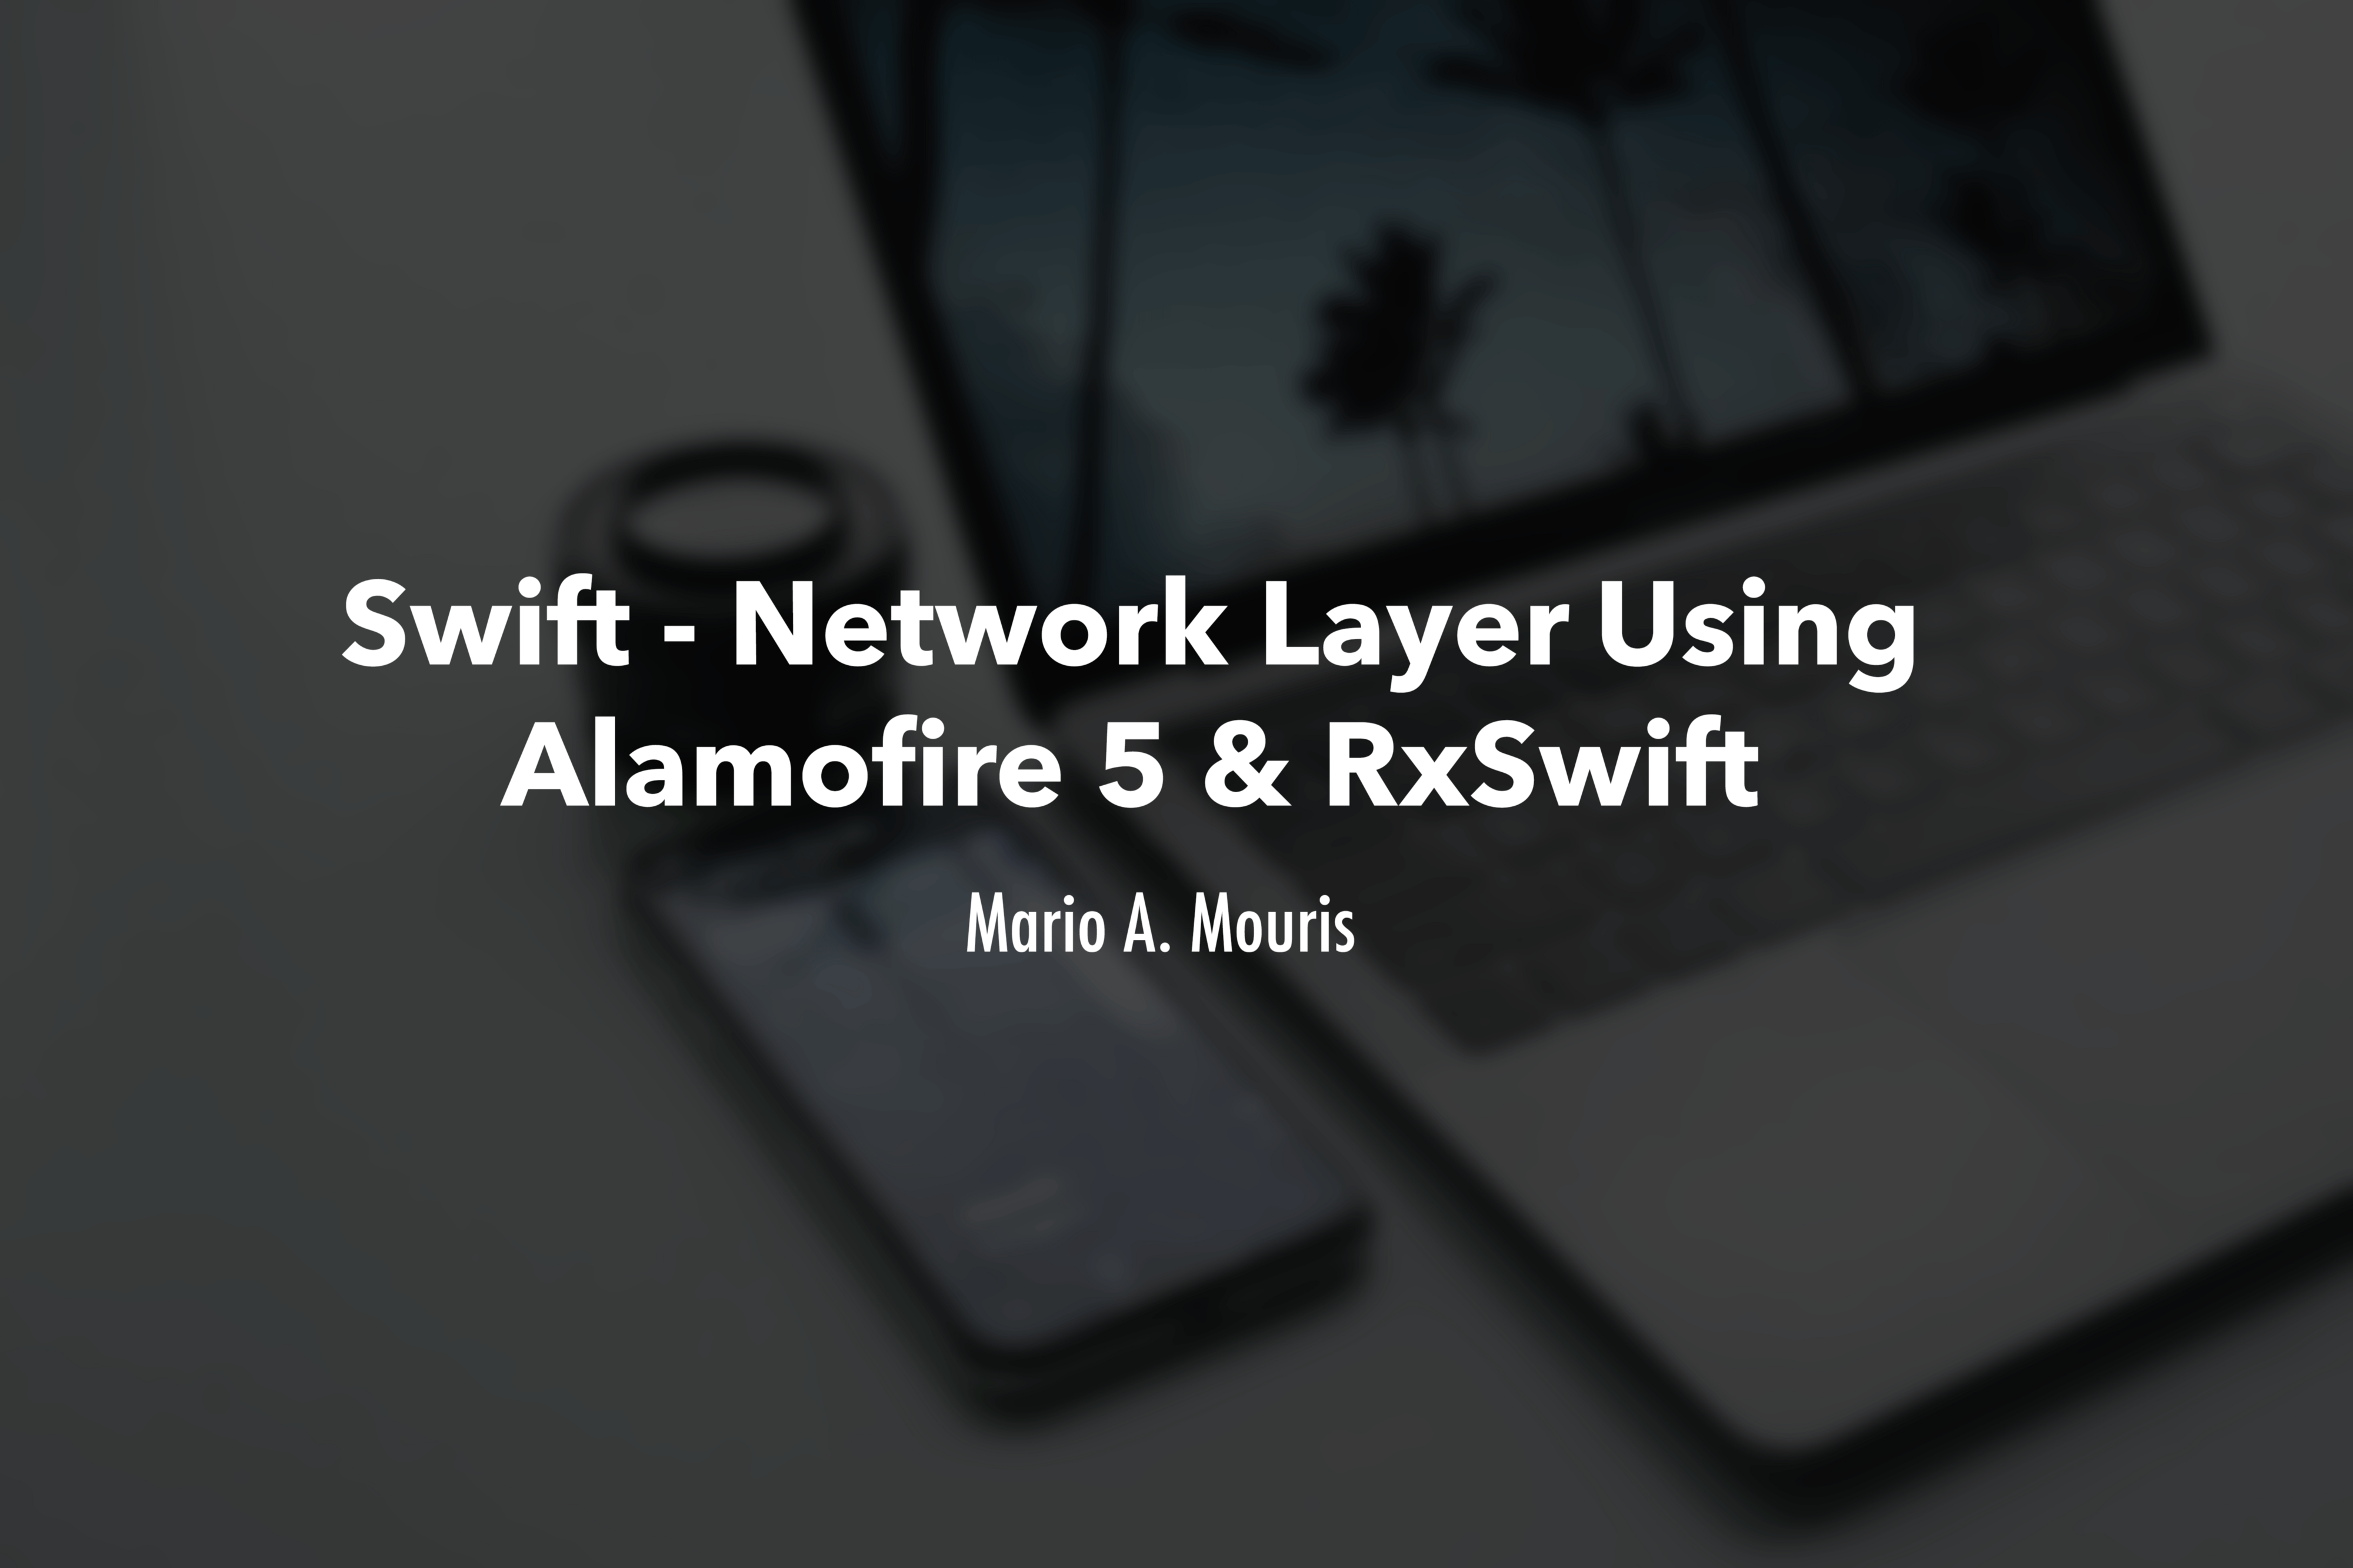 Swift 4 2 — A guide to building a network layer using